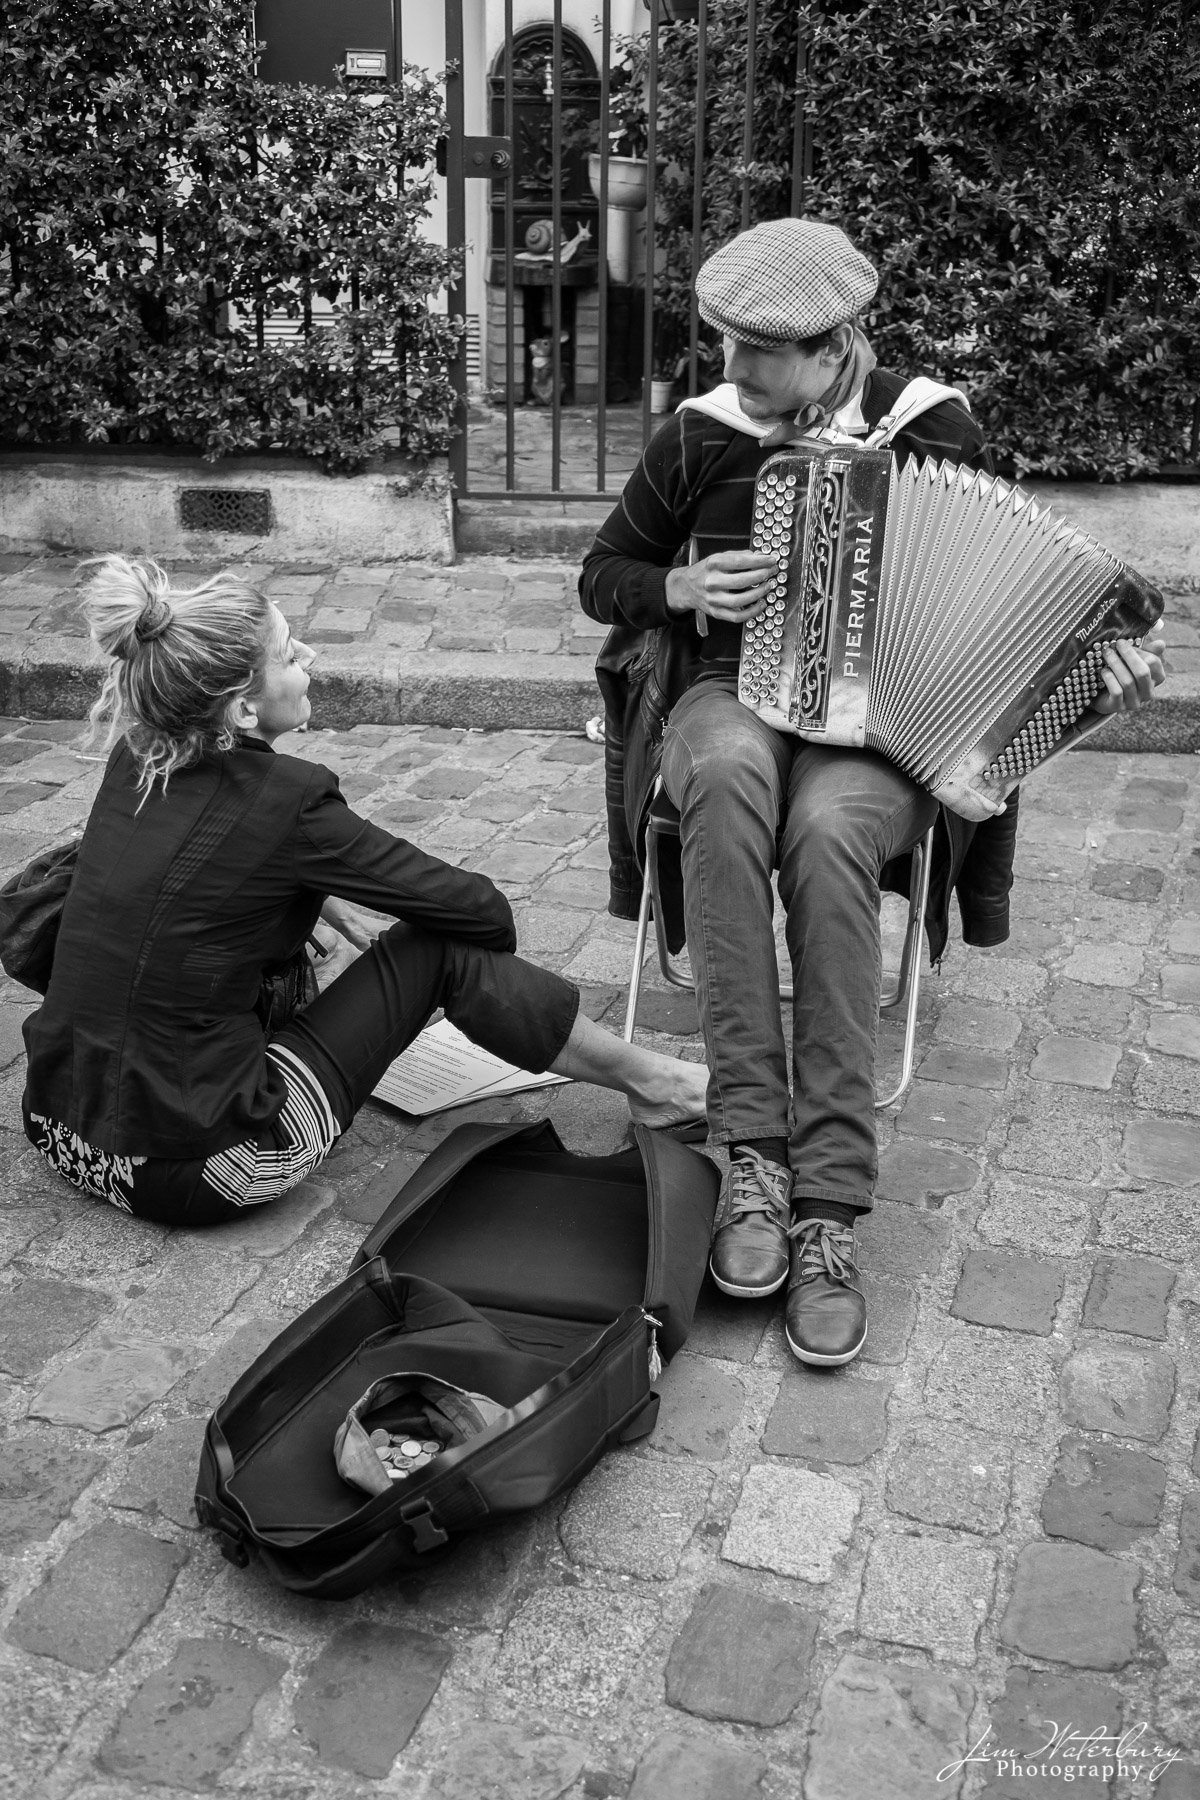 An accordian player performs for a fan on the streets of Montmartre, Paris.  Black & white.